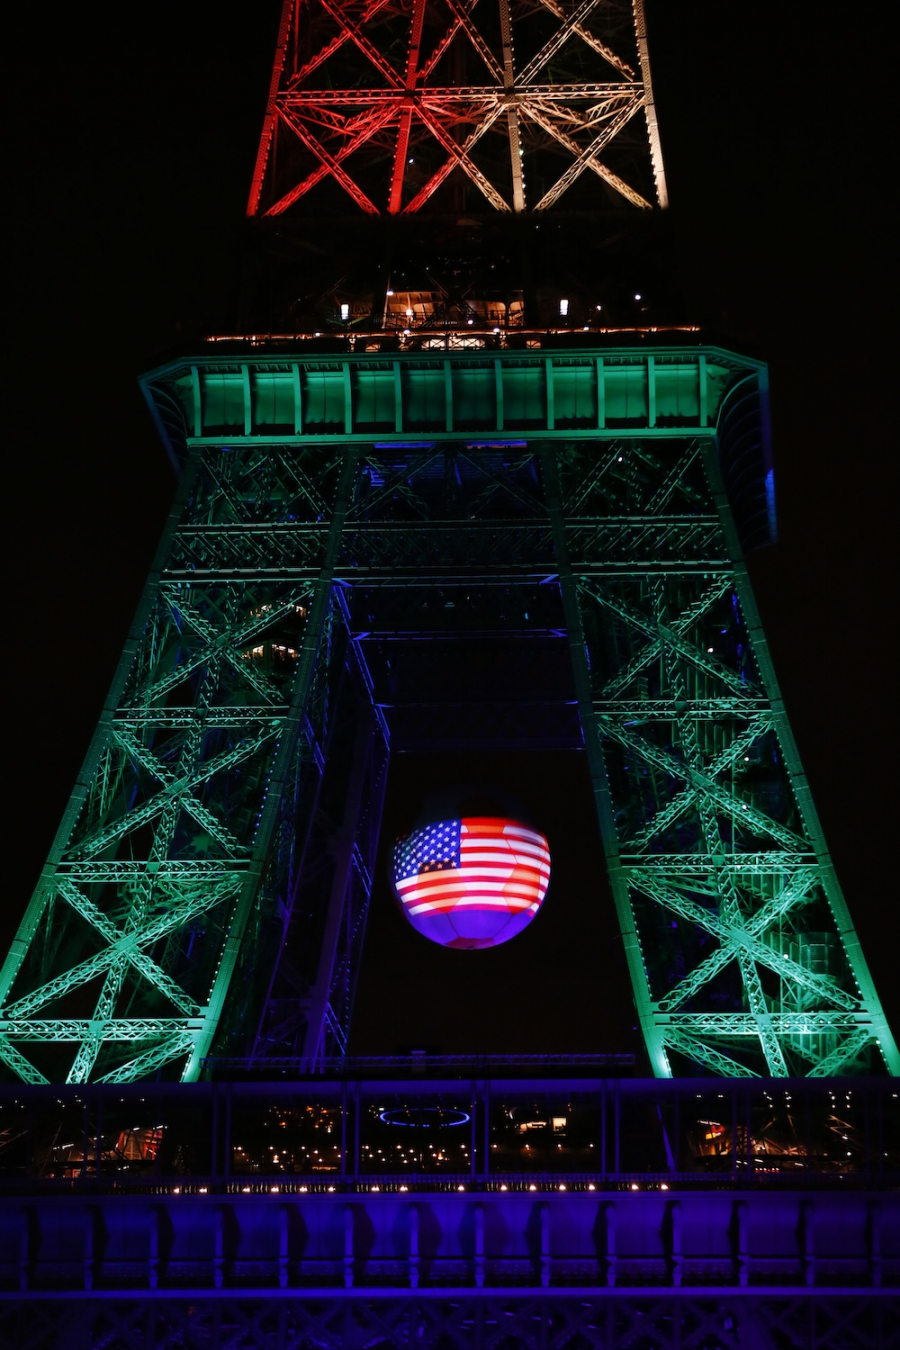 The American flag is projected onto the Eiffel Tower illuminated in memory of the victims of the nightclub mass shooting in Orlando on June 13.